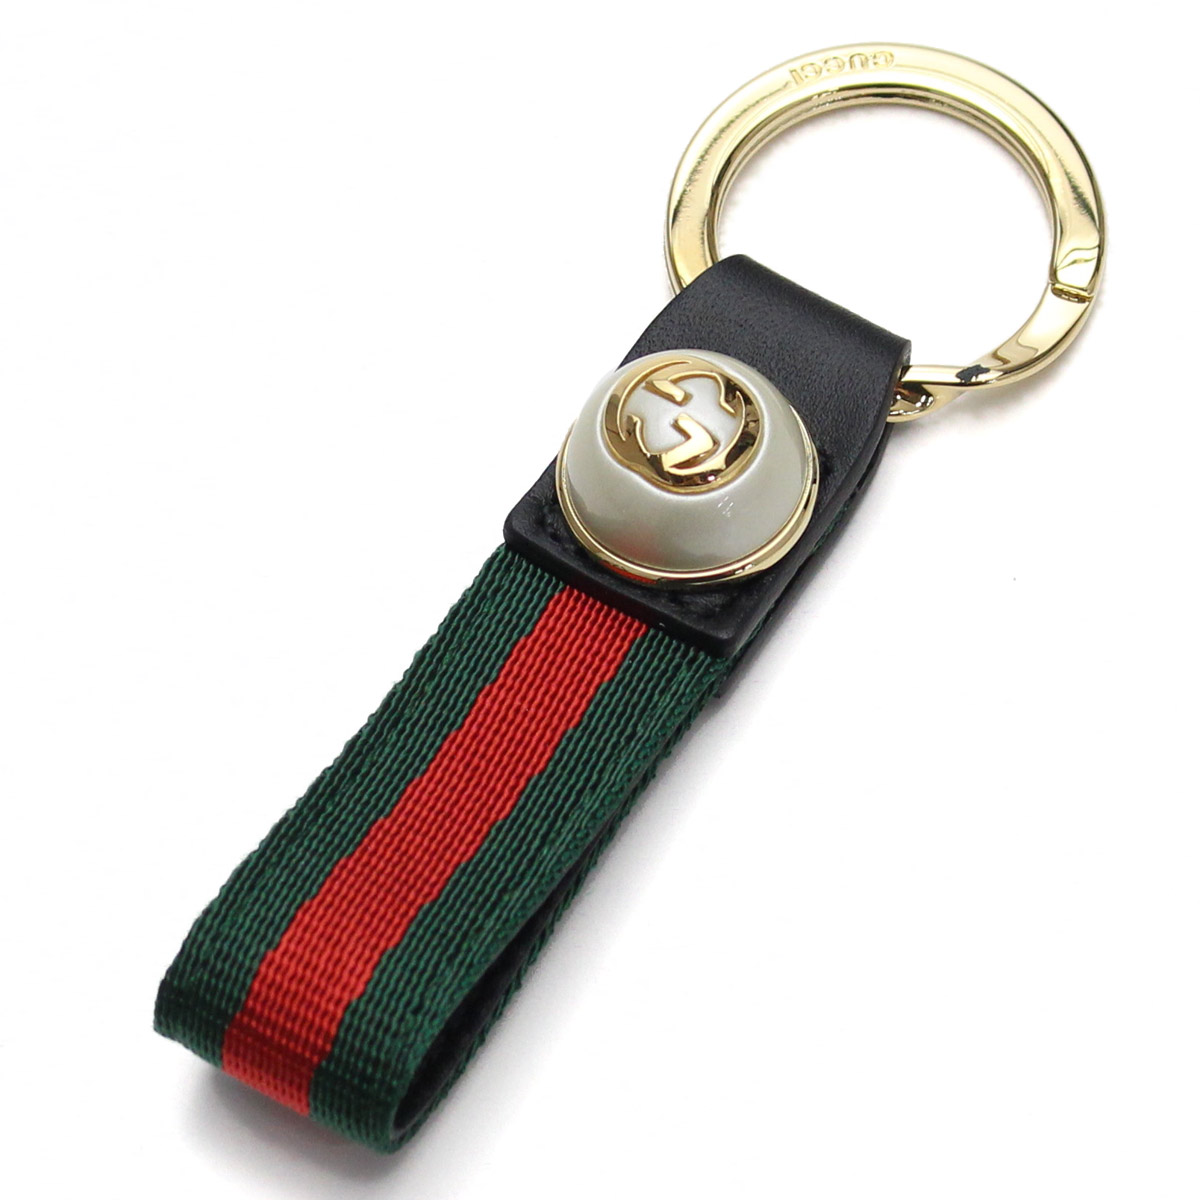 234029f468a Bighit The total brand wholesale  Gucci (GUCCI) GG pearl Web key ring  476390 H9VEG 8481 black green system